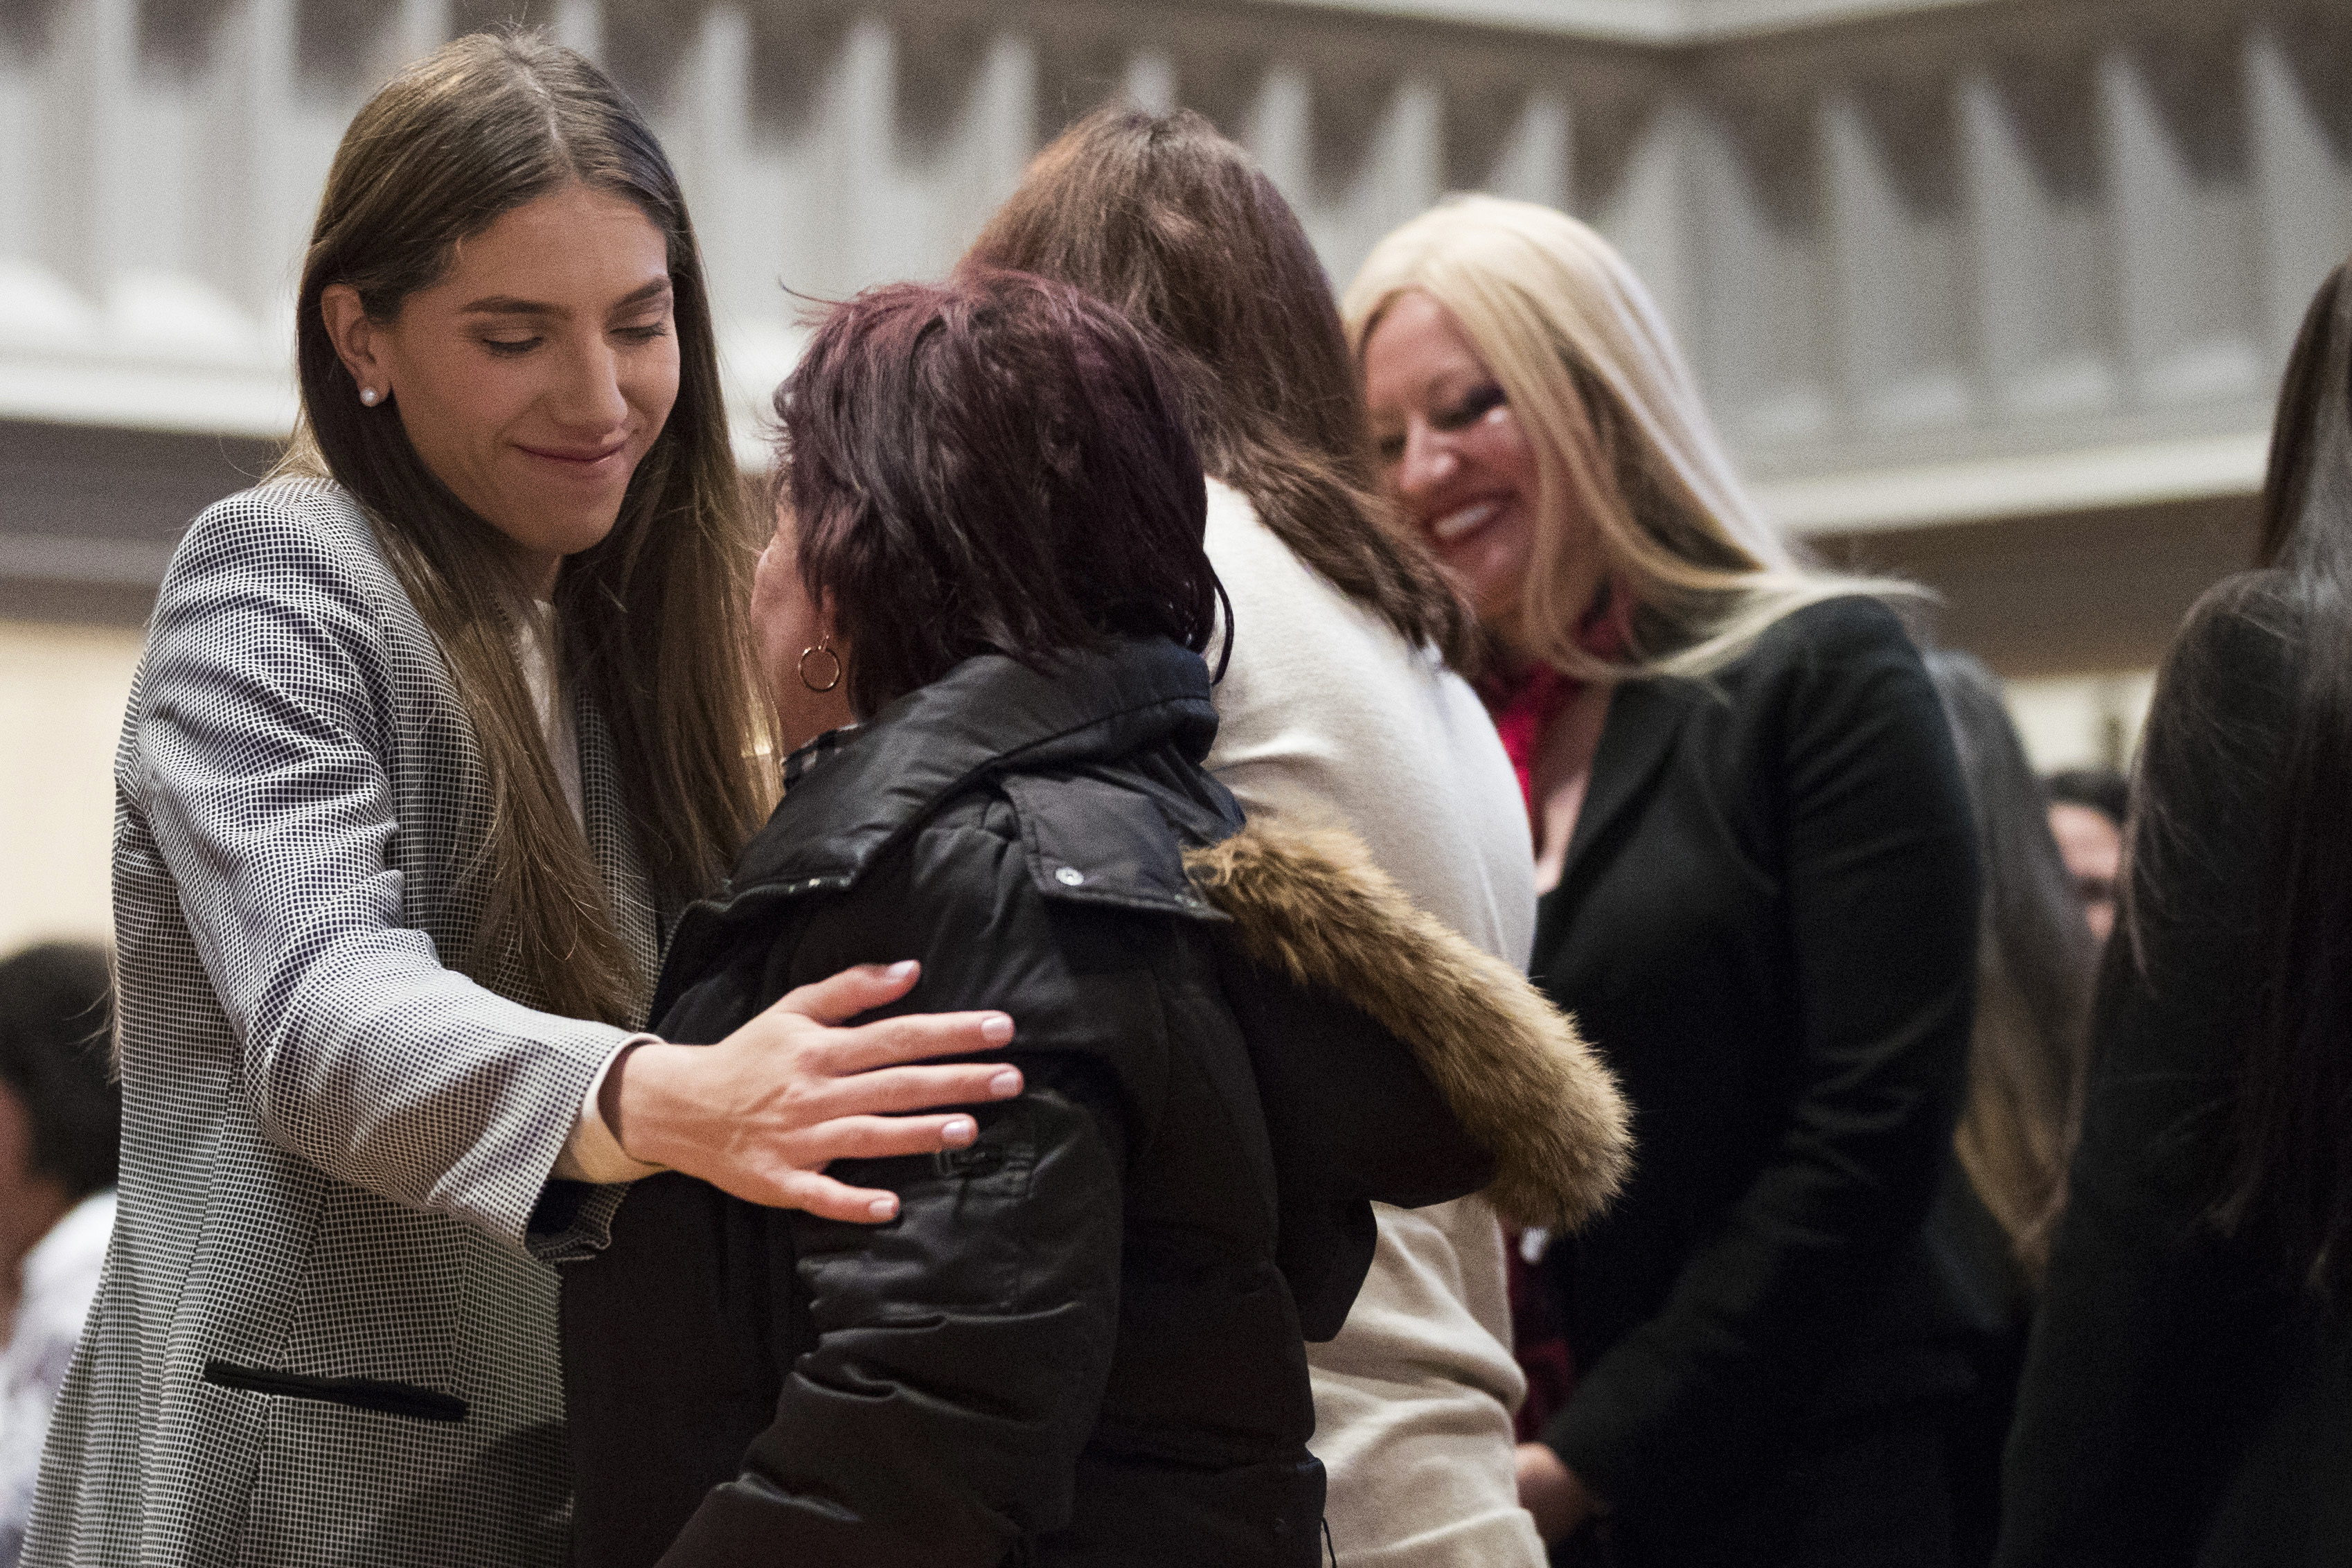 Fabiana Rosales, left, wife of Venezuelan opposition leader Juan Guaido, hugs Aminta Perez, mother of Venezuelan police Officer Oscar Perez, while celebrating Mass at St. Teresa's Church on the Lower East Side of Manhattan, Tuesday, March 26, 2019, in New York. Rosales is emerging as a prominent figure in Guaido's campaign to bring change in the crisis-wracked country. (AP Photo/Mary Altaffer)